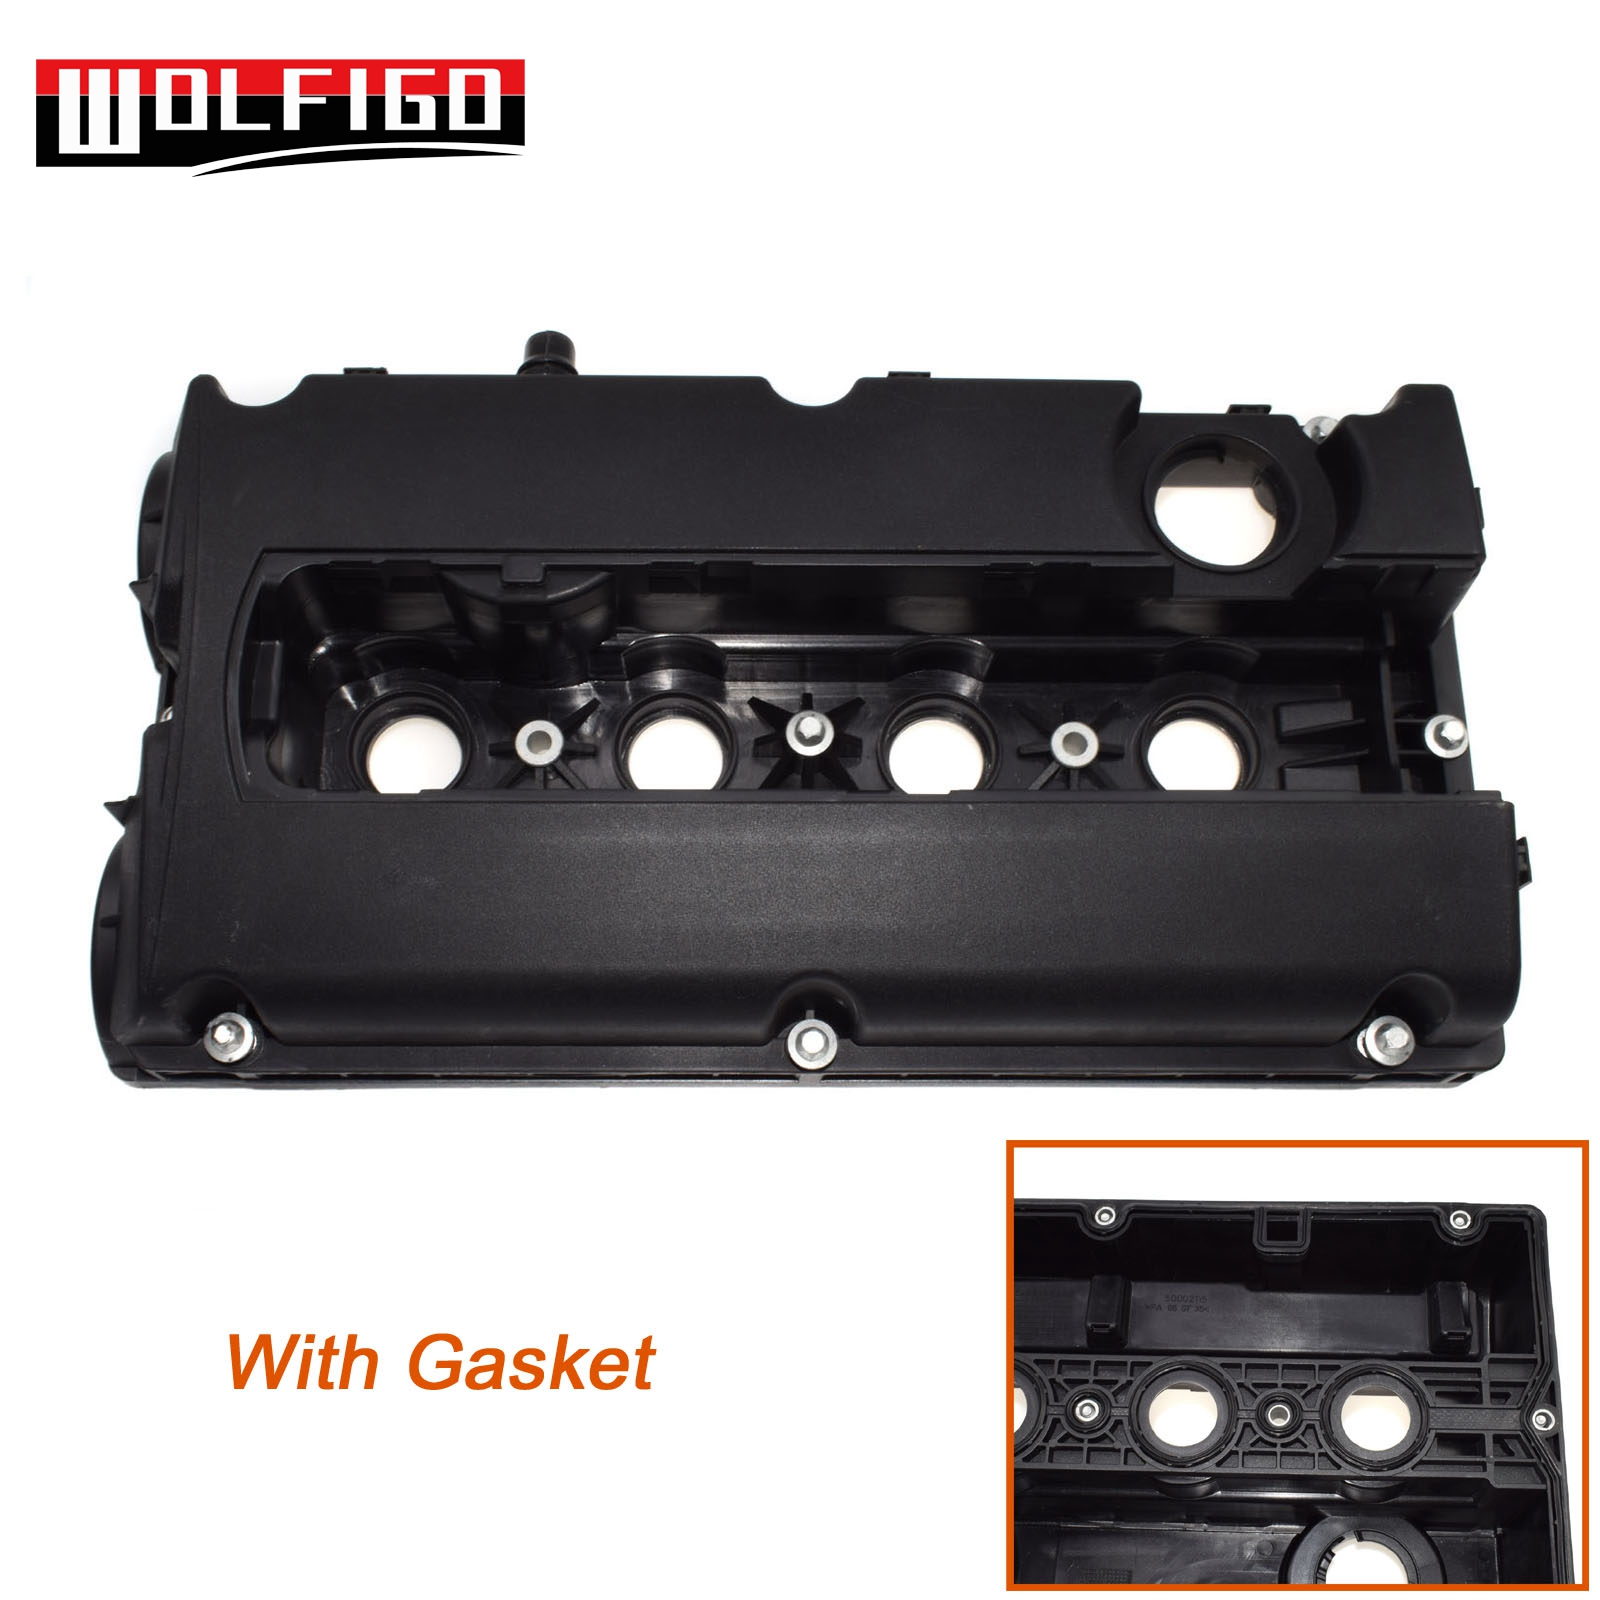 WOLFIGO New 55556284 5607159 For Vauxhall Astra G MK4 H MK5 Meriva CAM ROCKER ENGINE VALVE COVER And GASKET Z16XEP 1.6 5607592